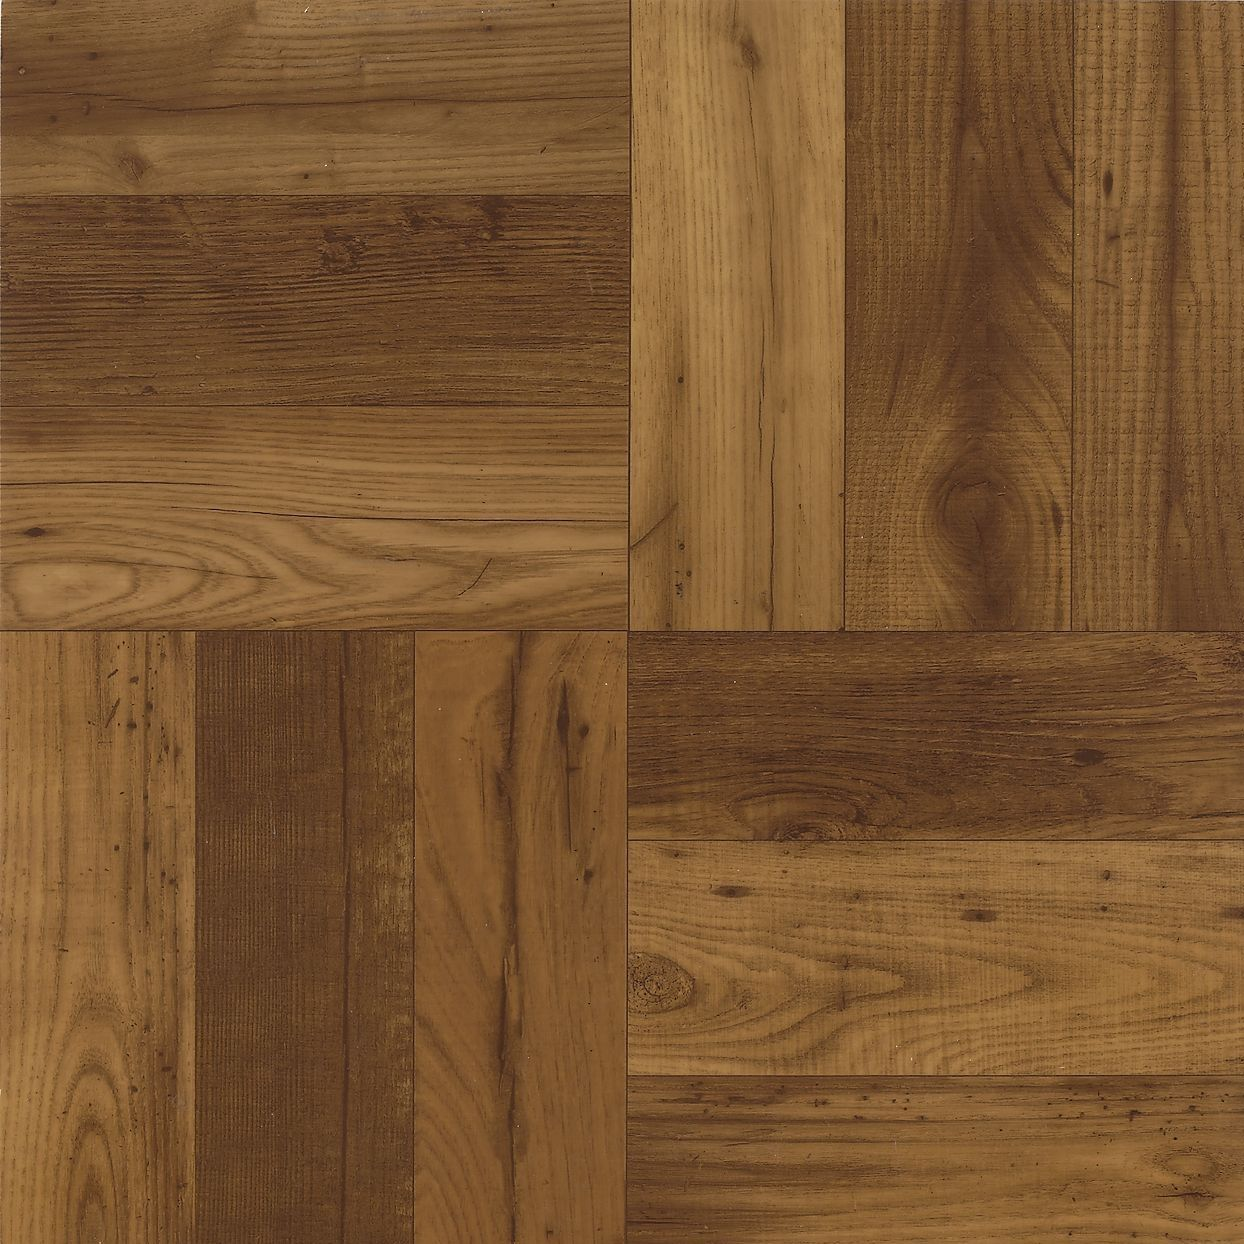 Tile Look Vinyl Part - 44: Vinyl Flooring / Residential / Tile / Wood Look CRISWOOD: RUSSET OAK  Armstrong Flooring